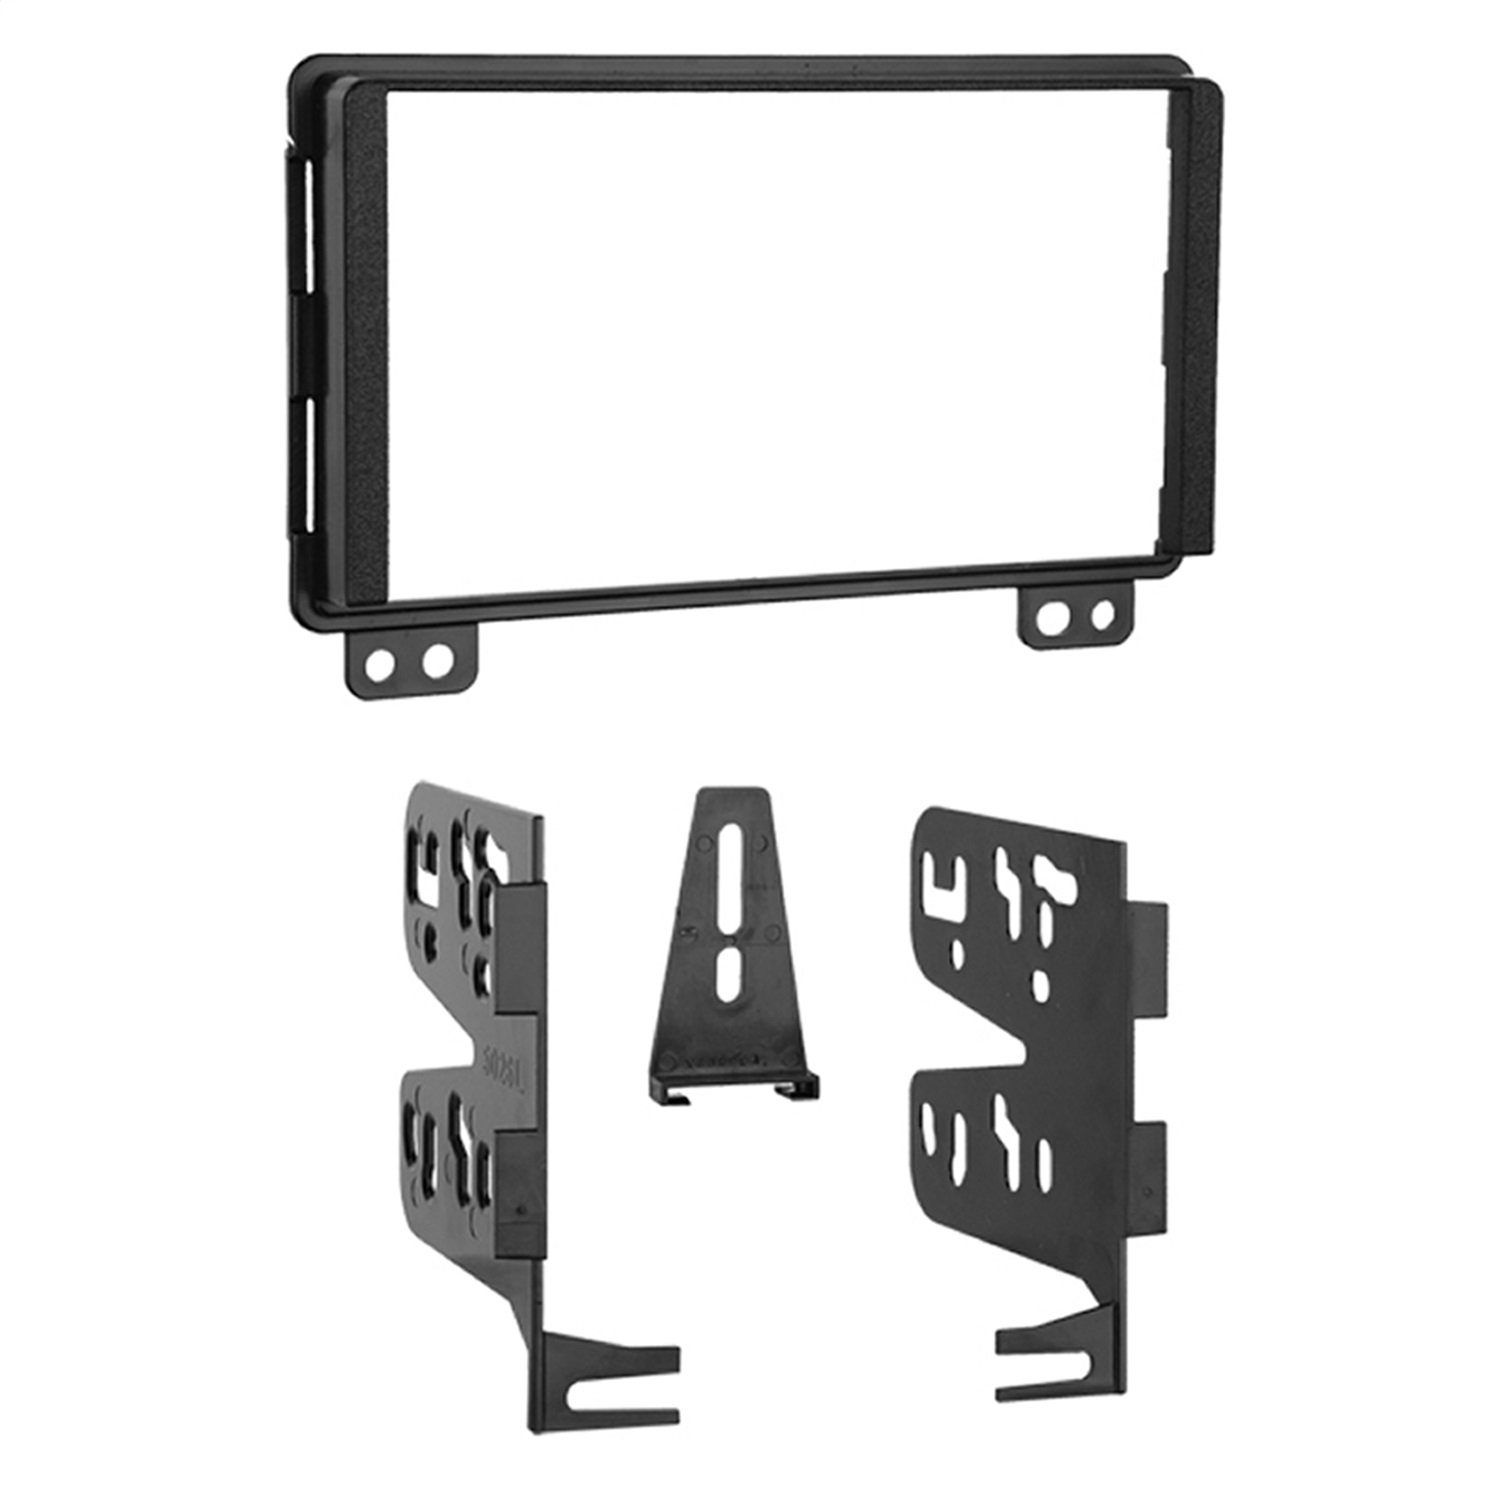 Metra 95-5026 Double DIN Installation Kit for Select 2001-up Ford, Lincoln and Mercury Vehicles -Black METRA Ltd